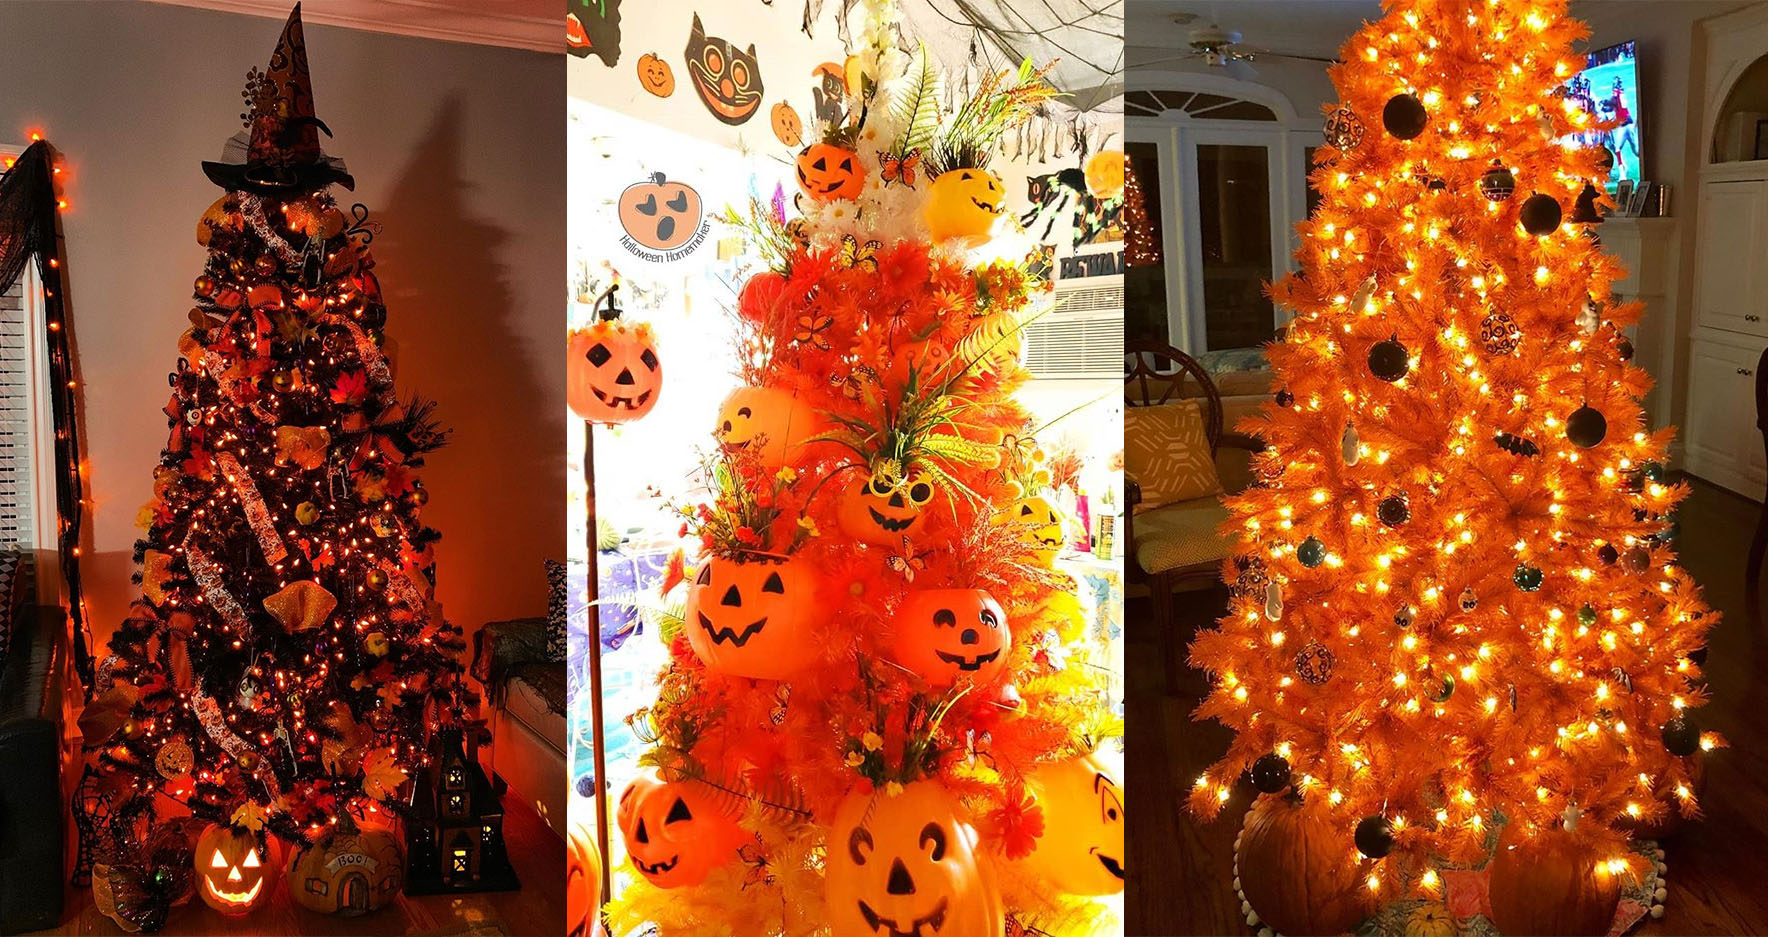 People Are Putting Their Christmas Trees Up Now But Decorating Them For Halloween